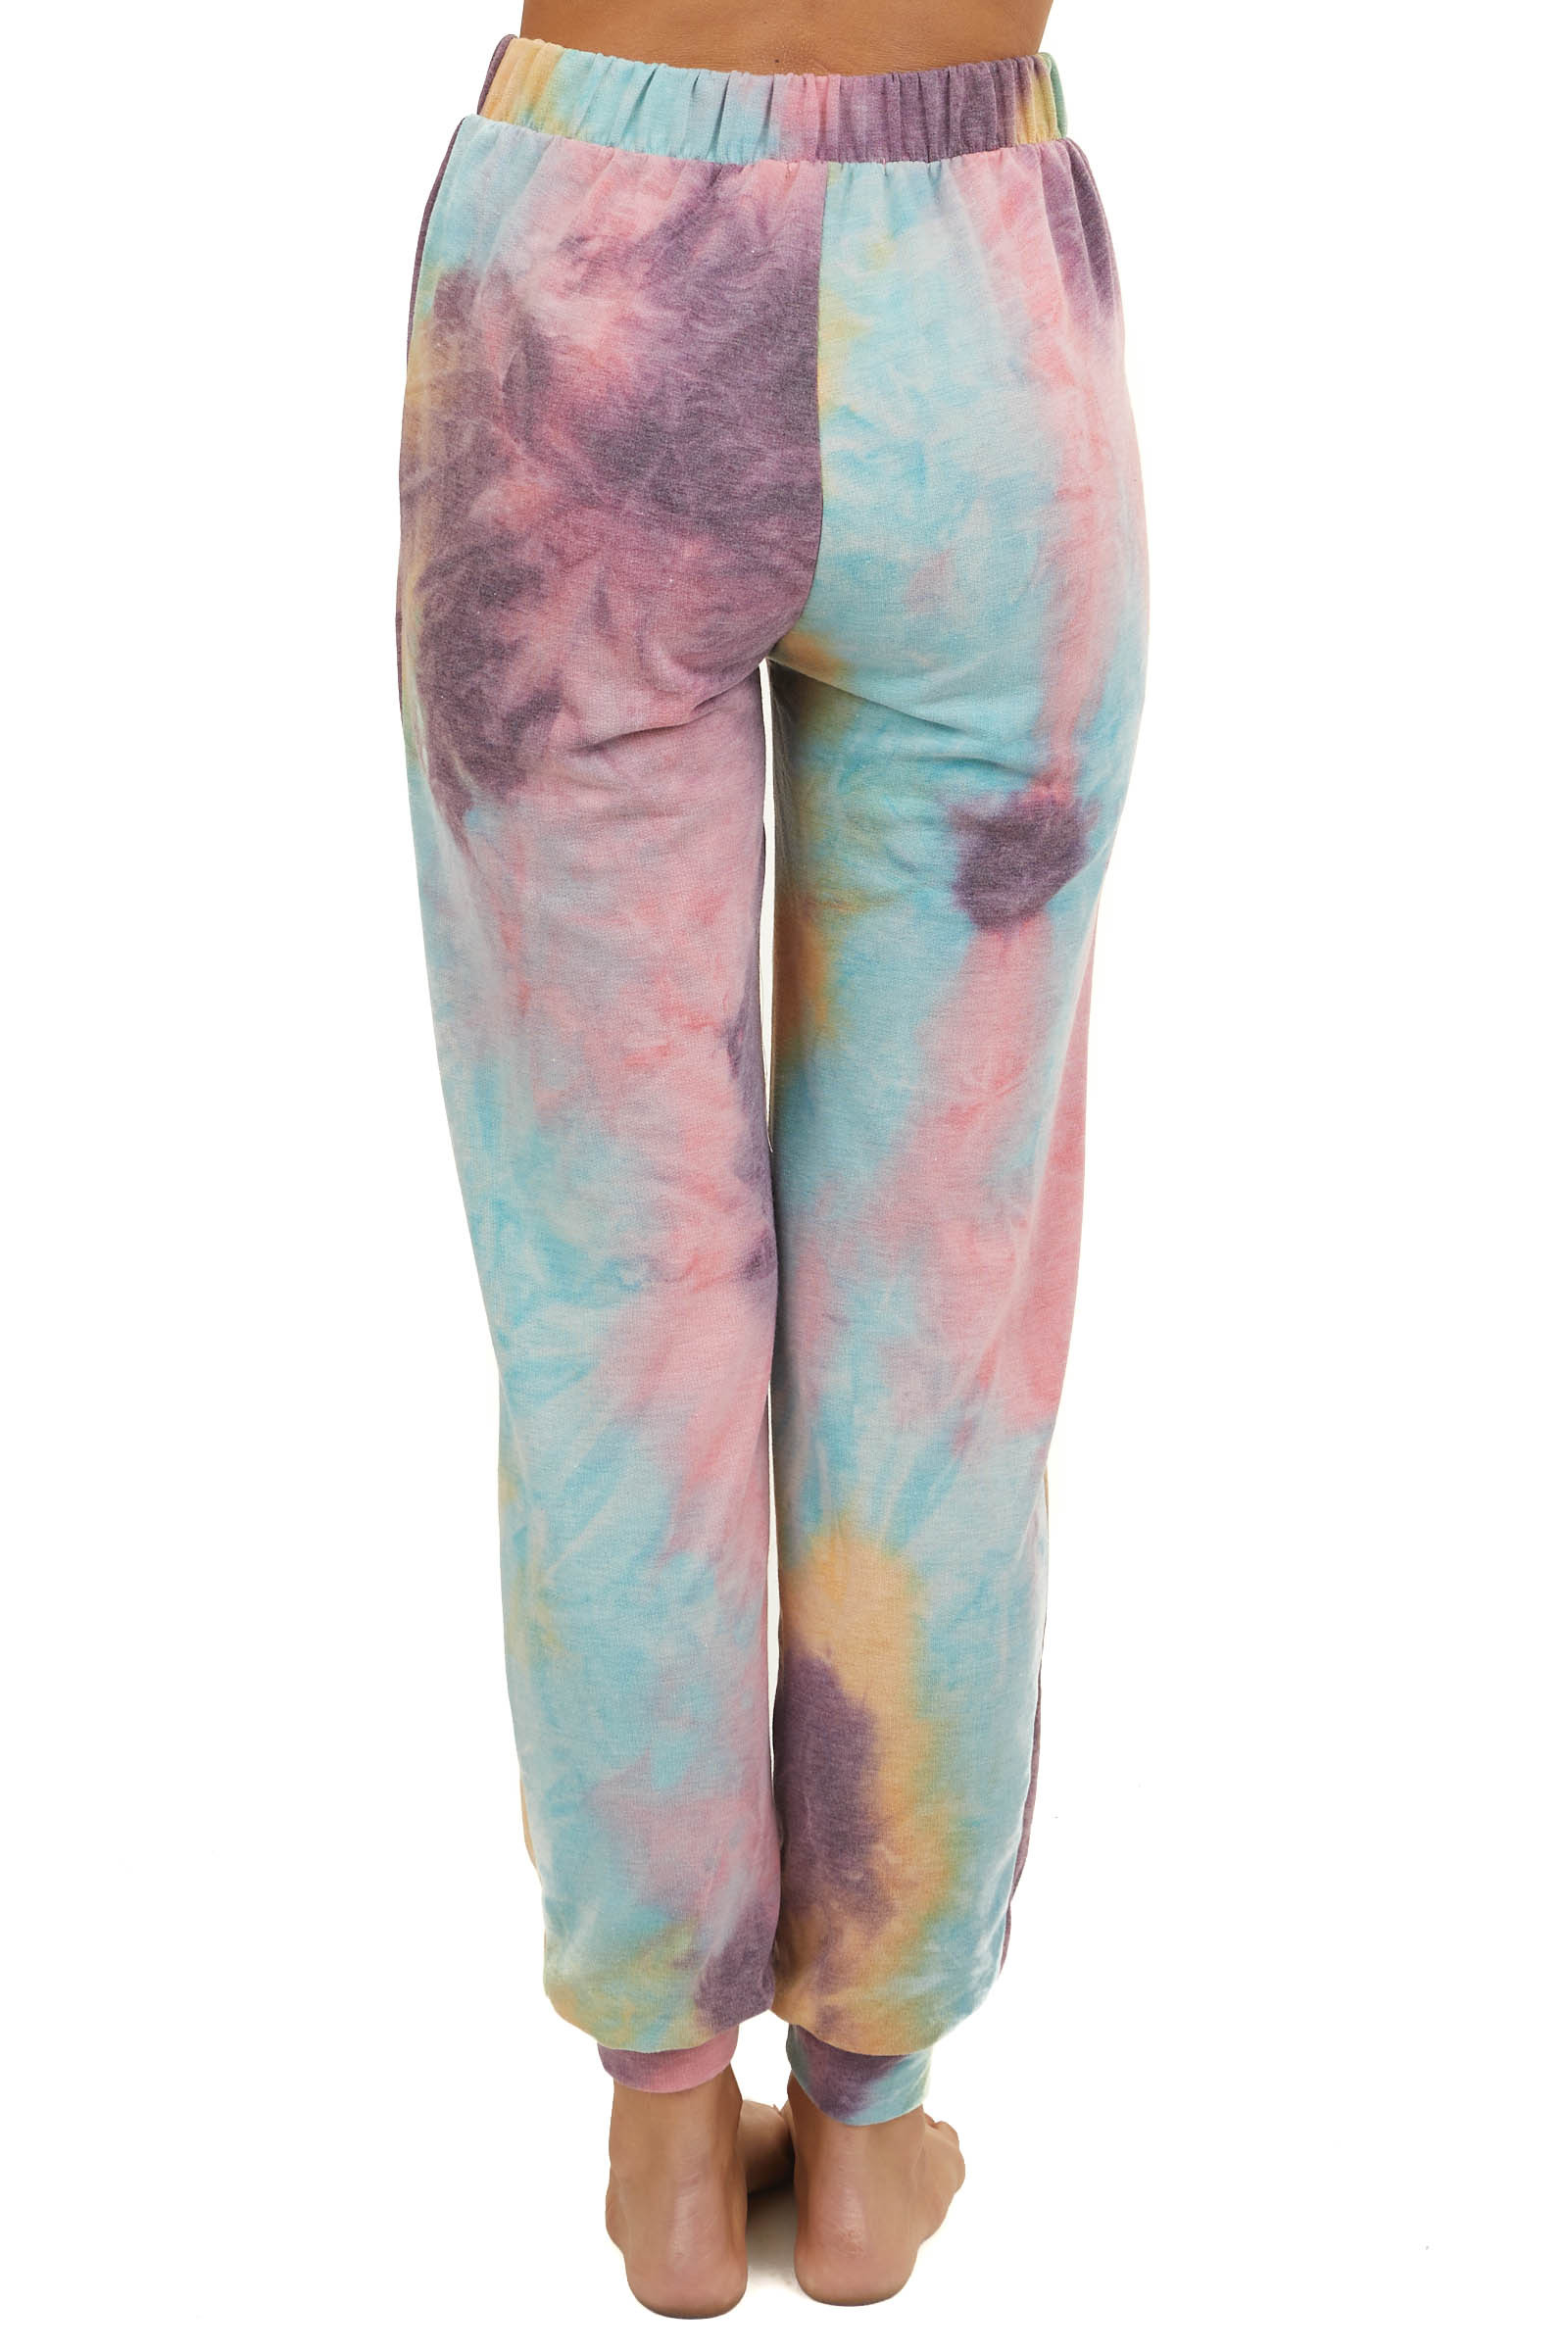 Dusty Multicolor Tie Dye Lightweight Joggers with Pockets